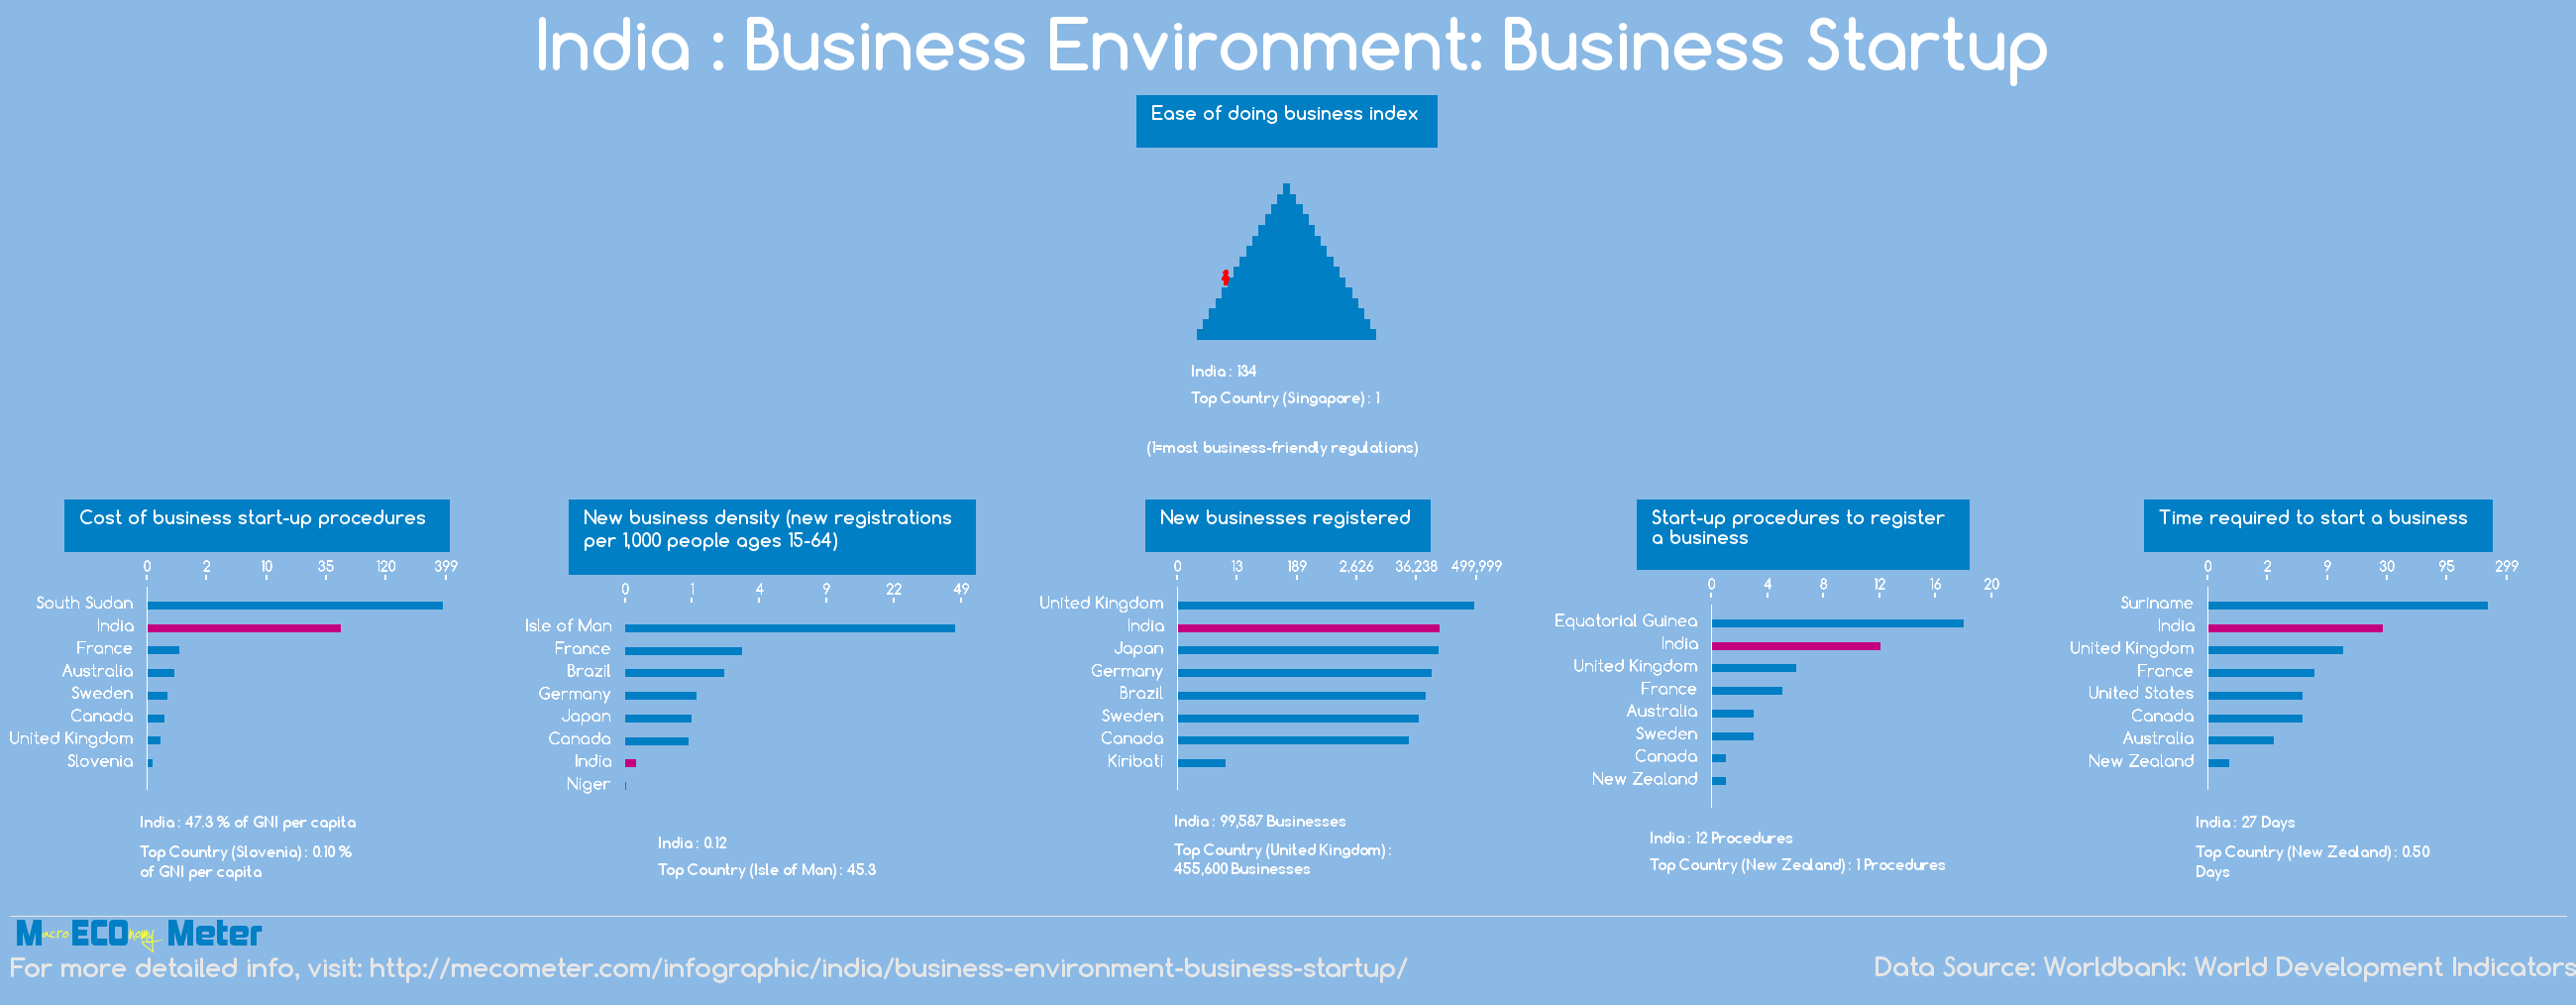 India : Business Environment: Business Startup